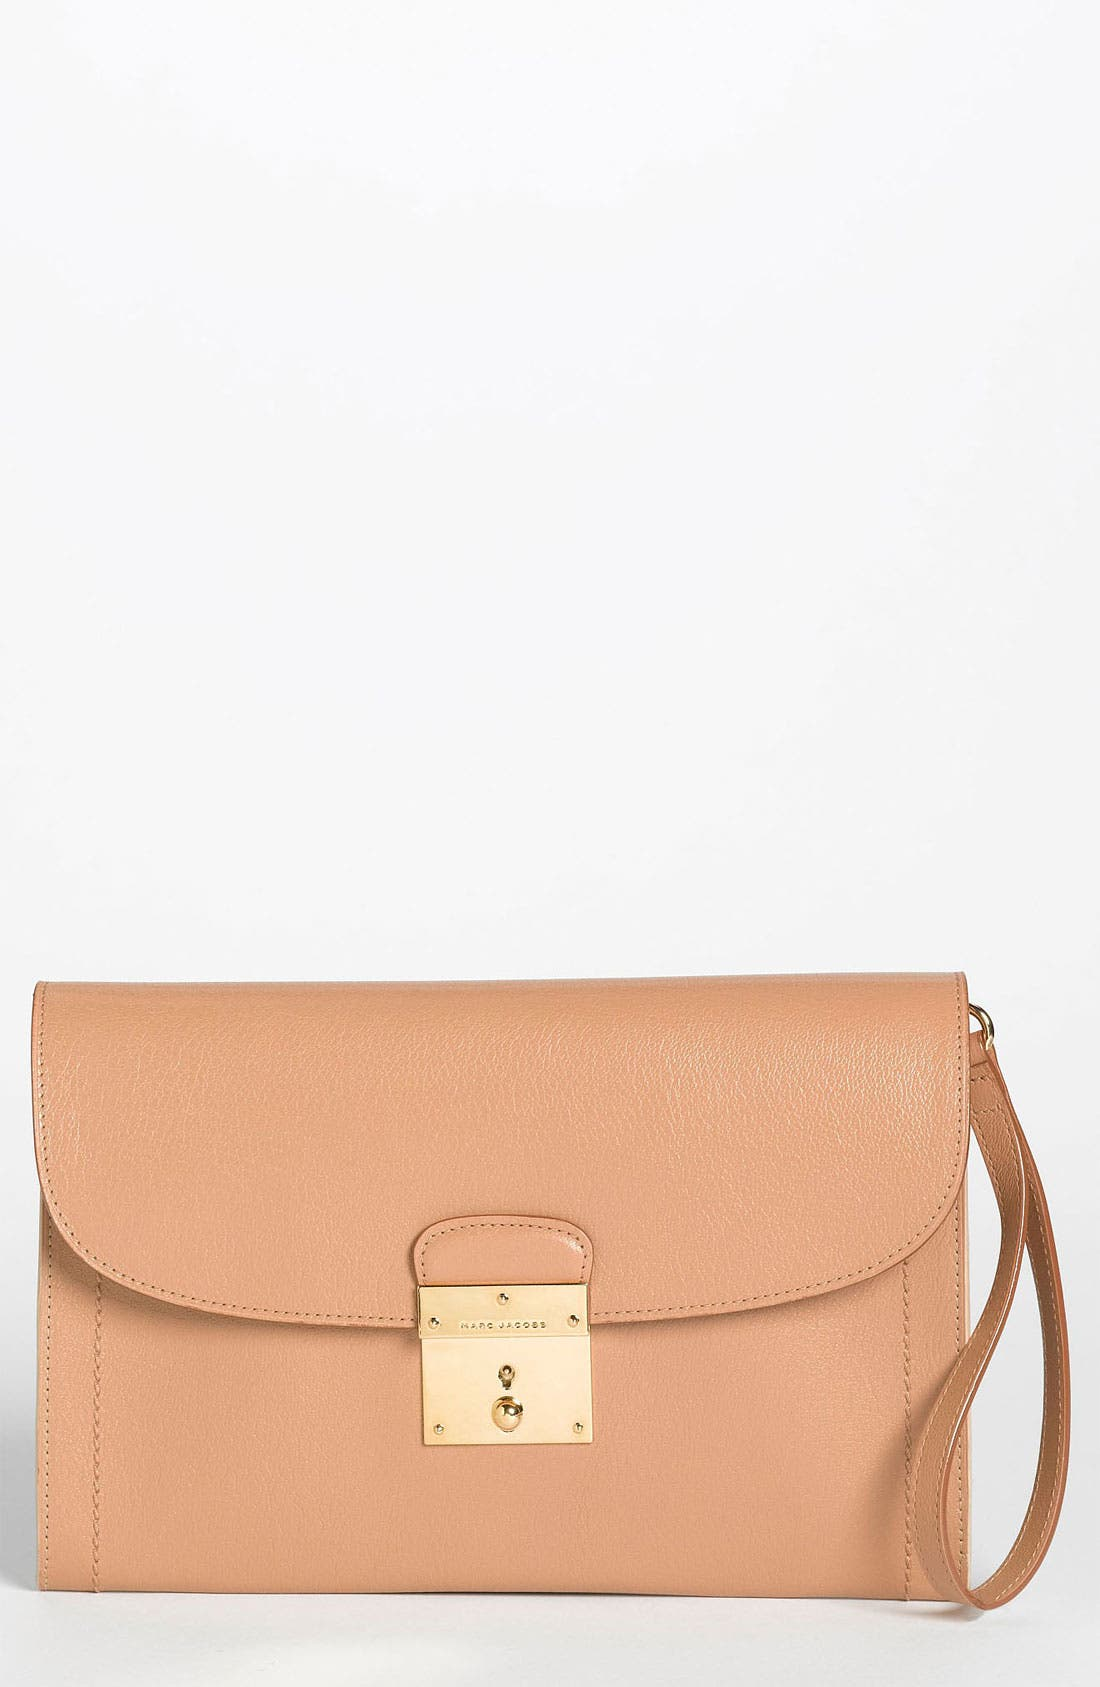 ,                             '1984 Isobel' Leather Clutch,                             Main thumbnail 5, color,                             250